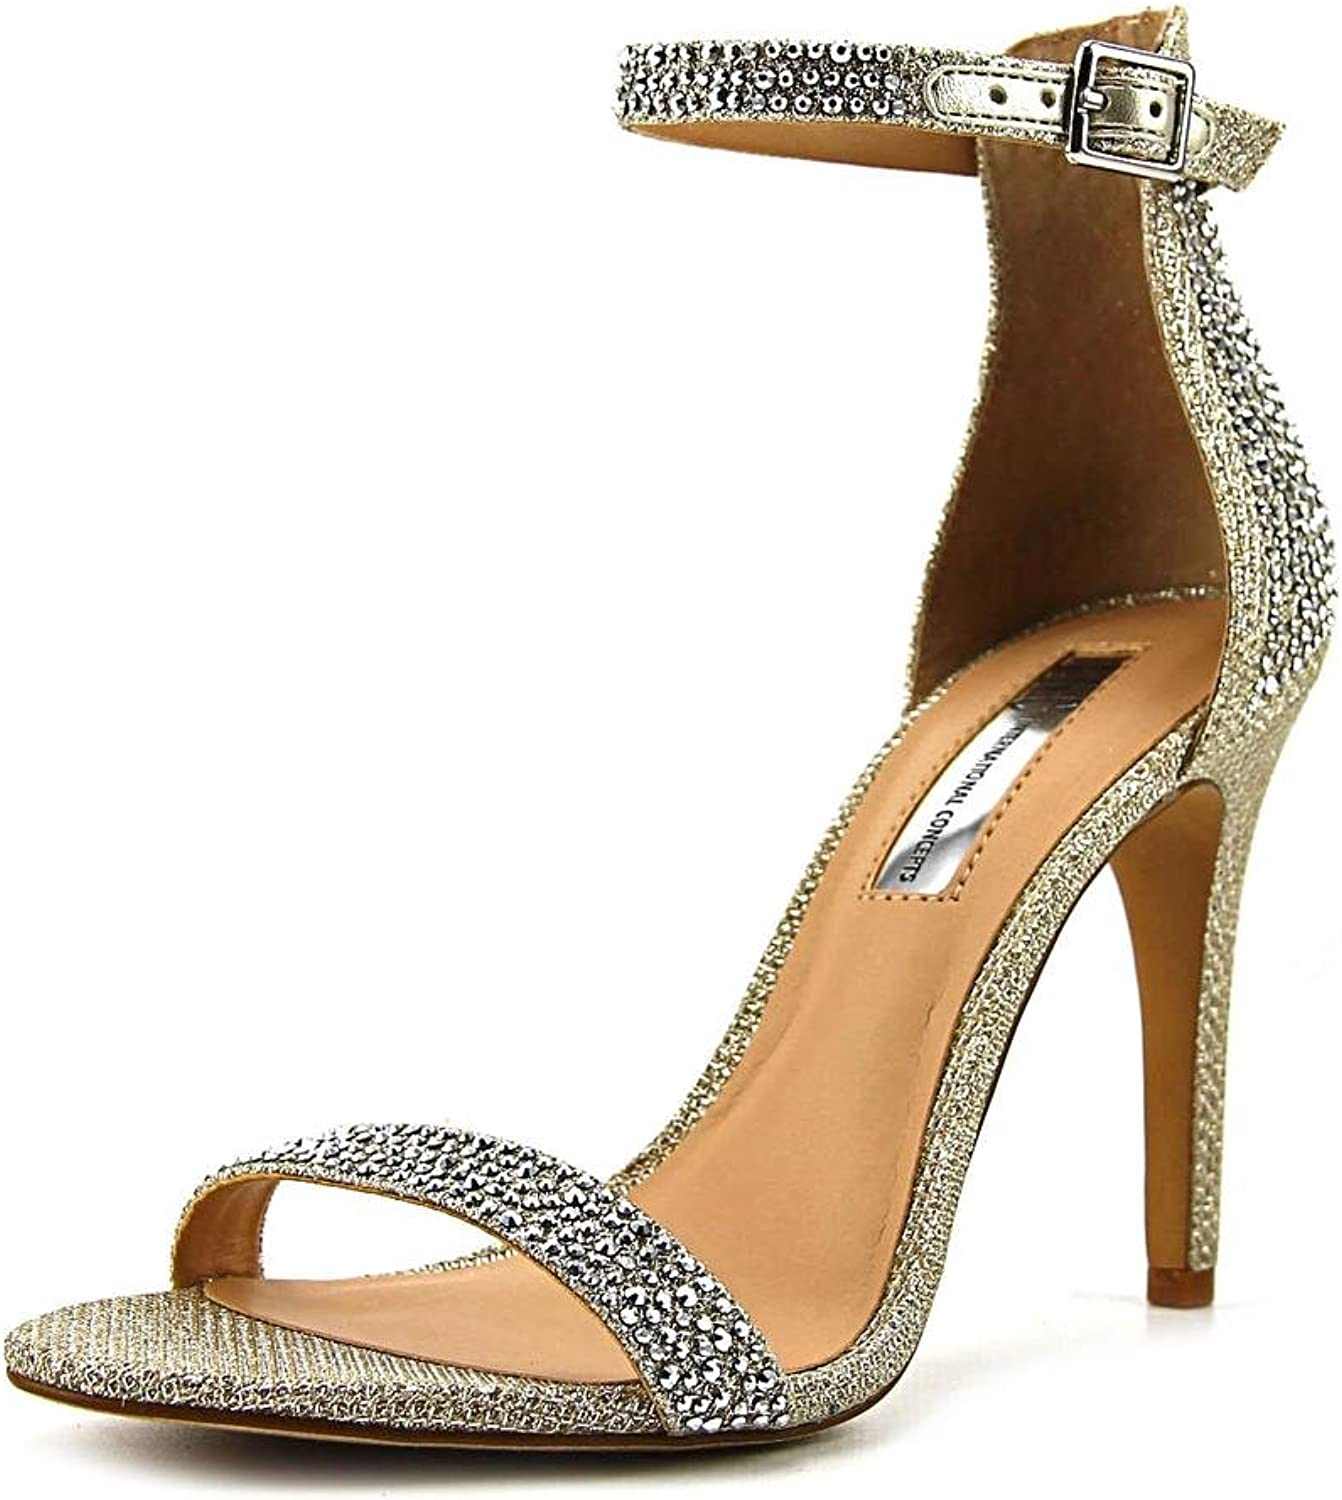 INC International Concepts Womens Roriee Open Toe Special Occasion Ankle Stra.